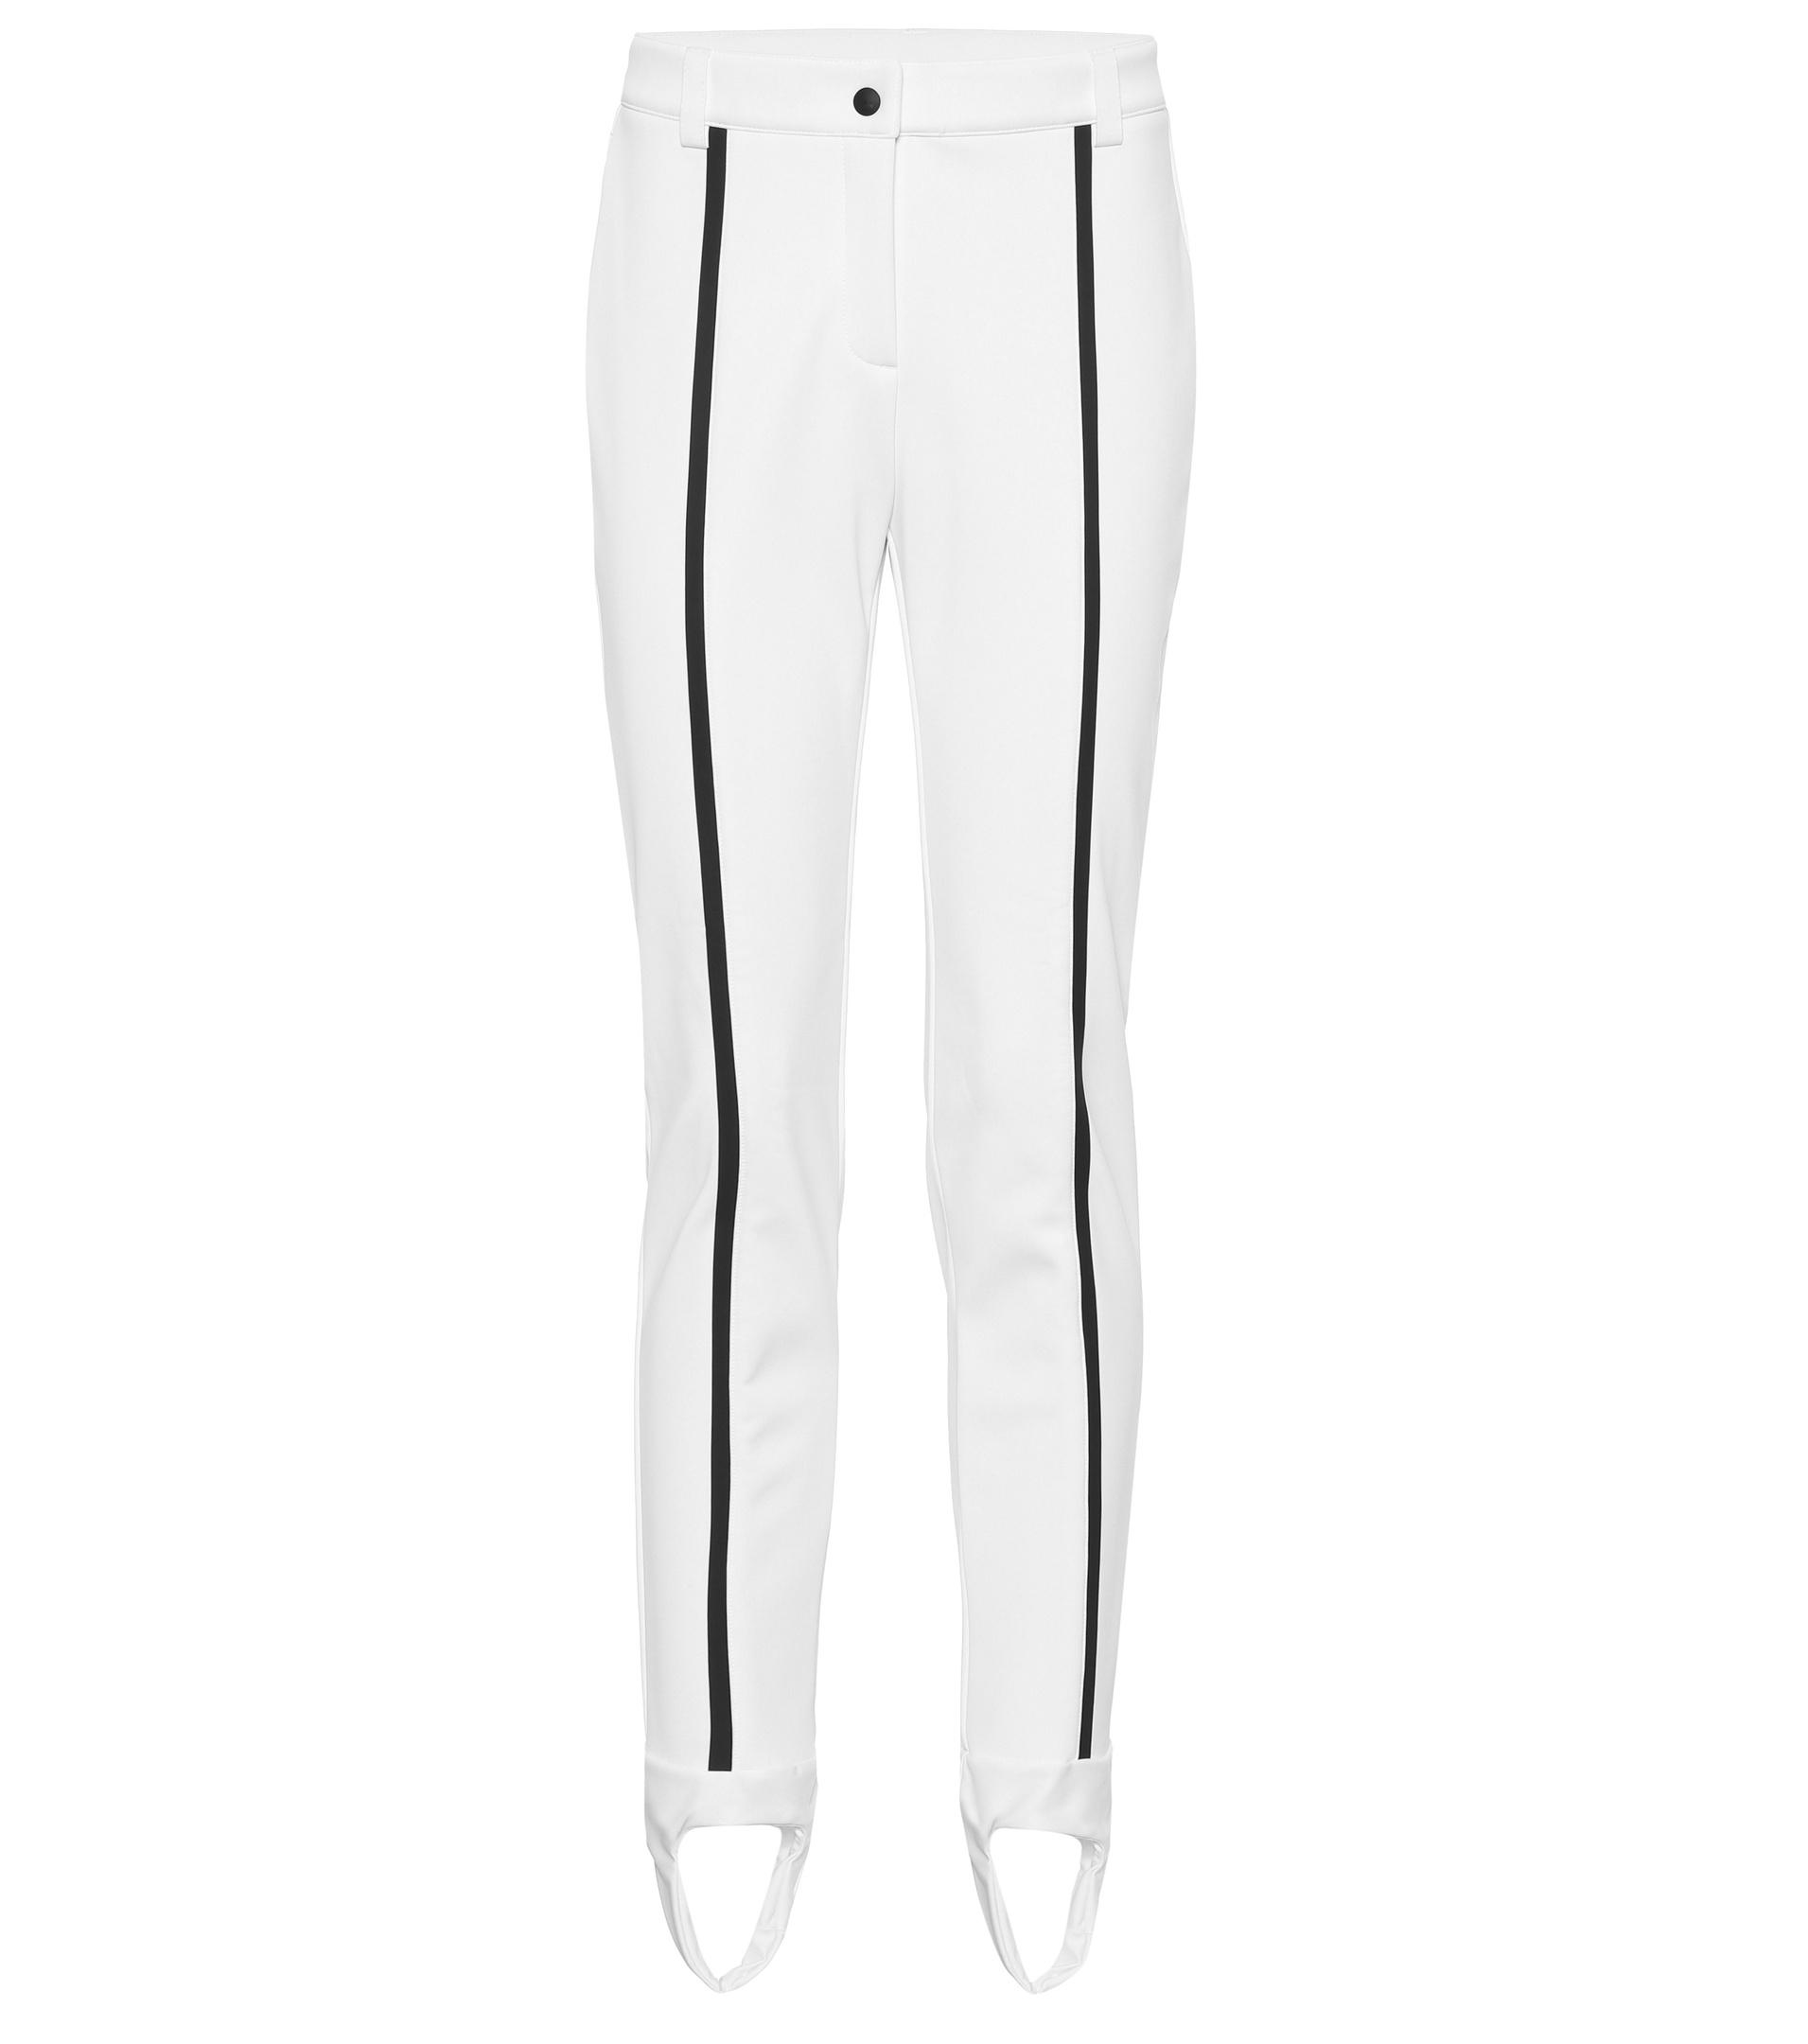 Lyst - Fendi Striped Stirrup Ski Trousers in White edbbcc268